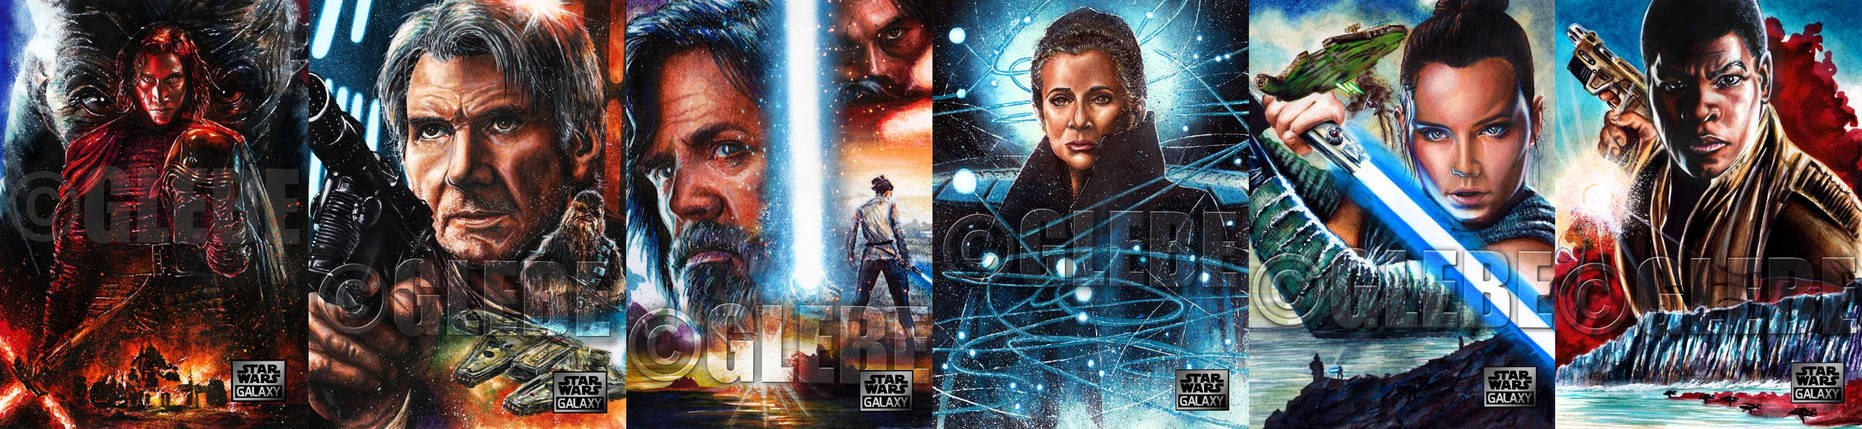 Star Wars Galaxy 2018: Legends by Glebe